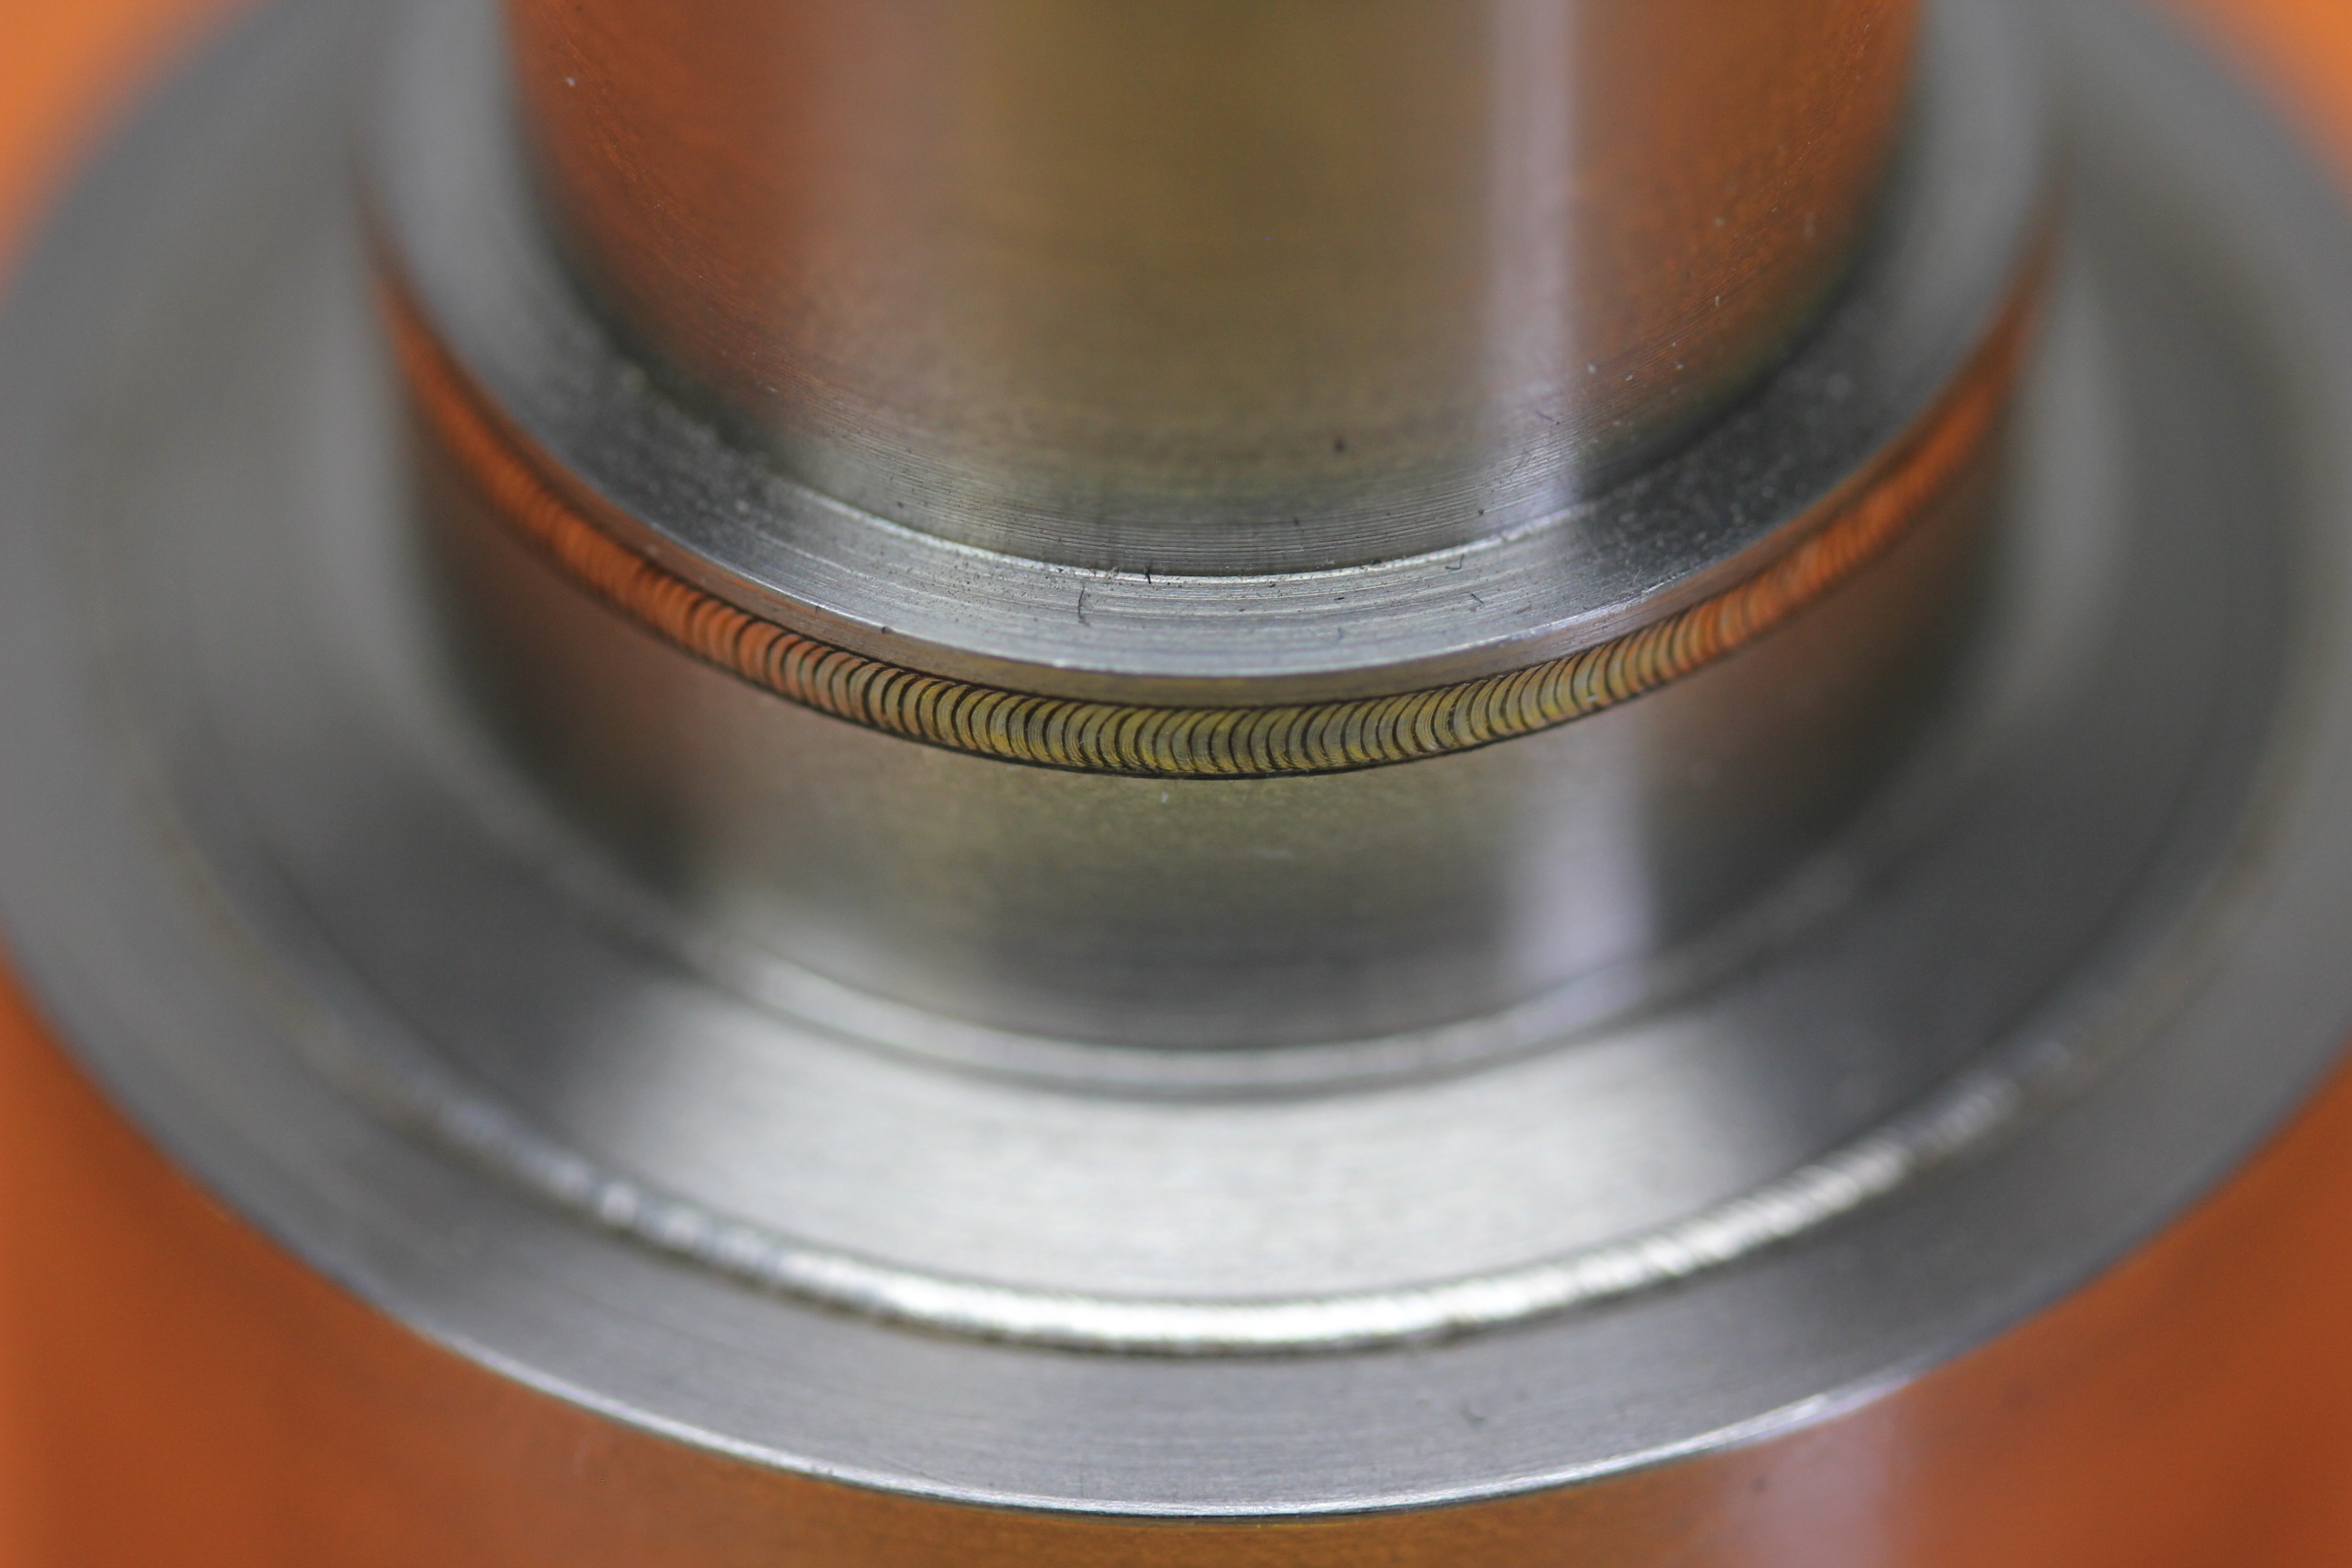 Tubular seam welding of engine components with a 400W pulsed Nd: YAG laser